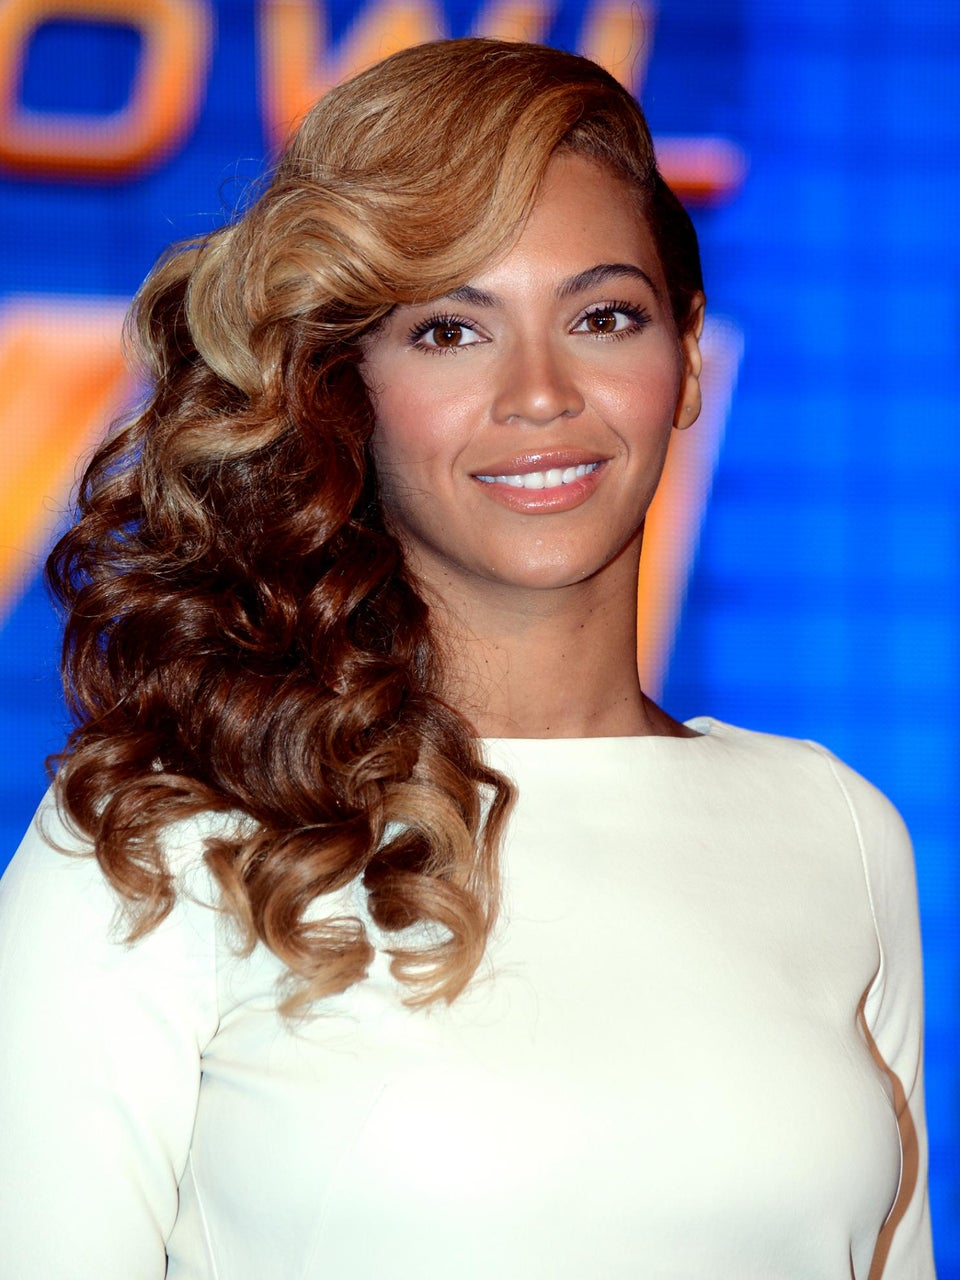 Must-See: Beyoncé Sings the National Anthem Live at NFL Press Conference